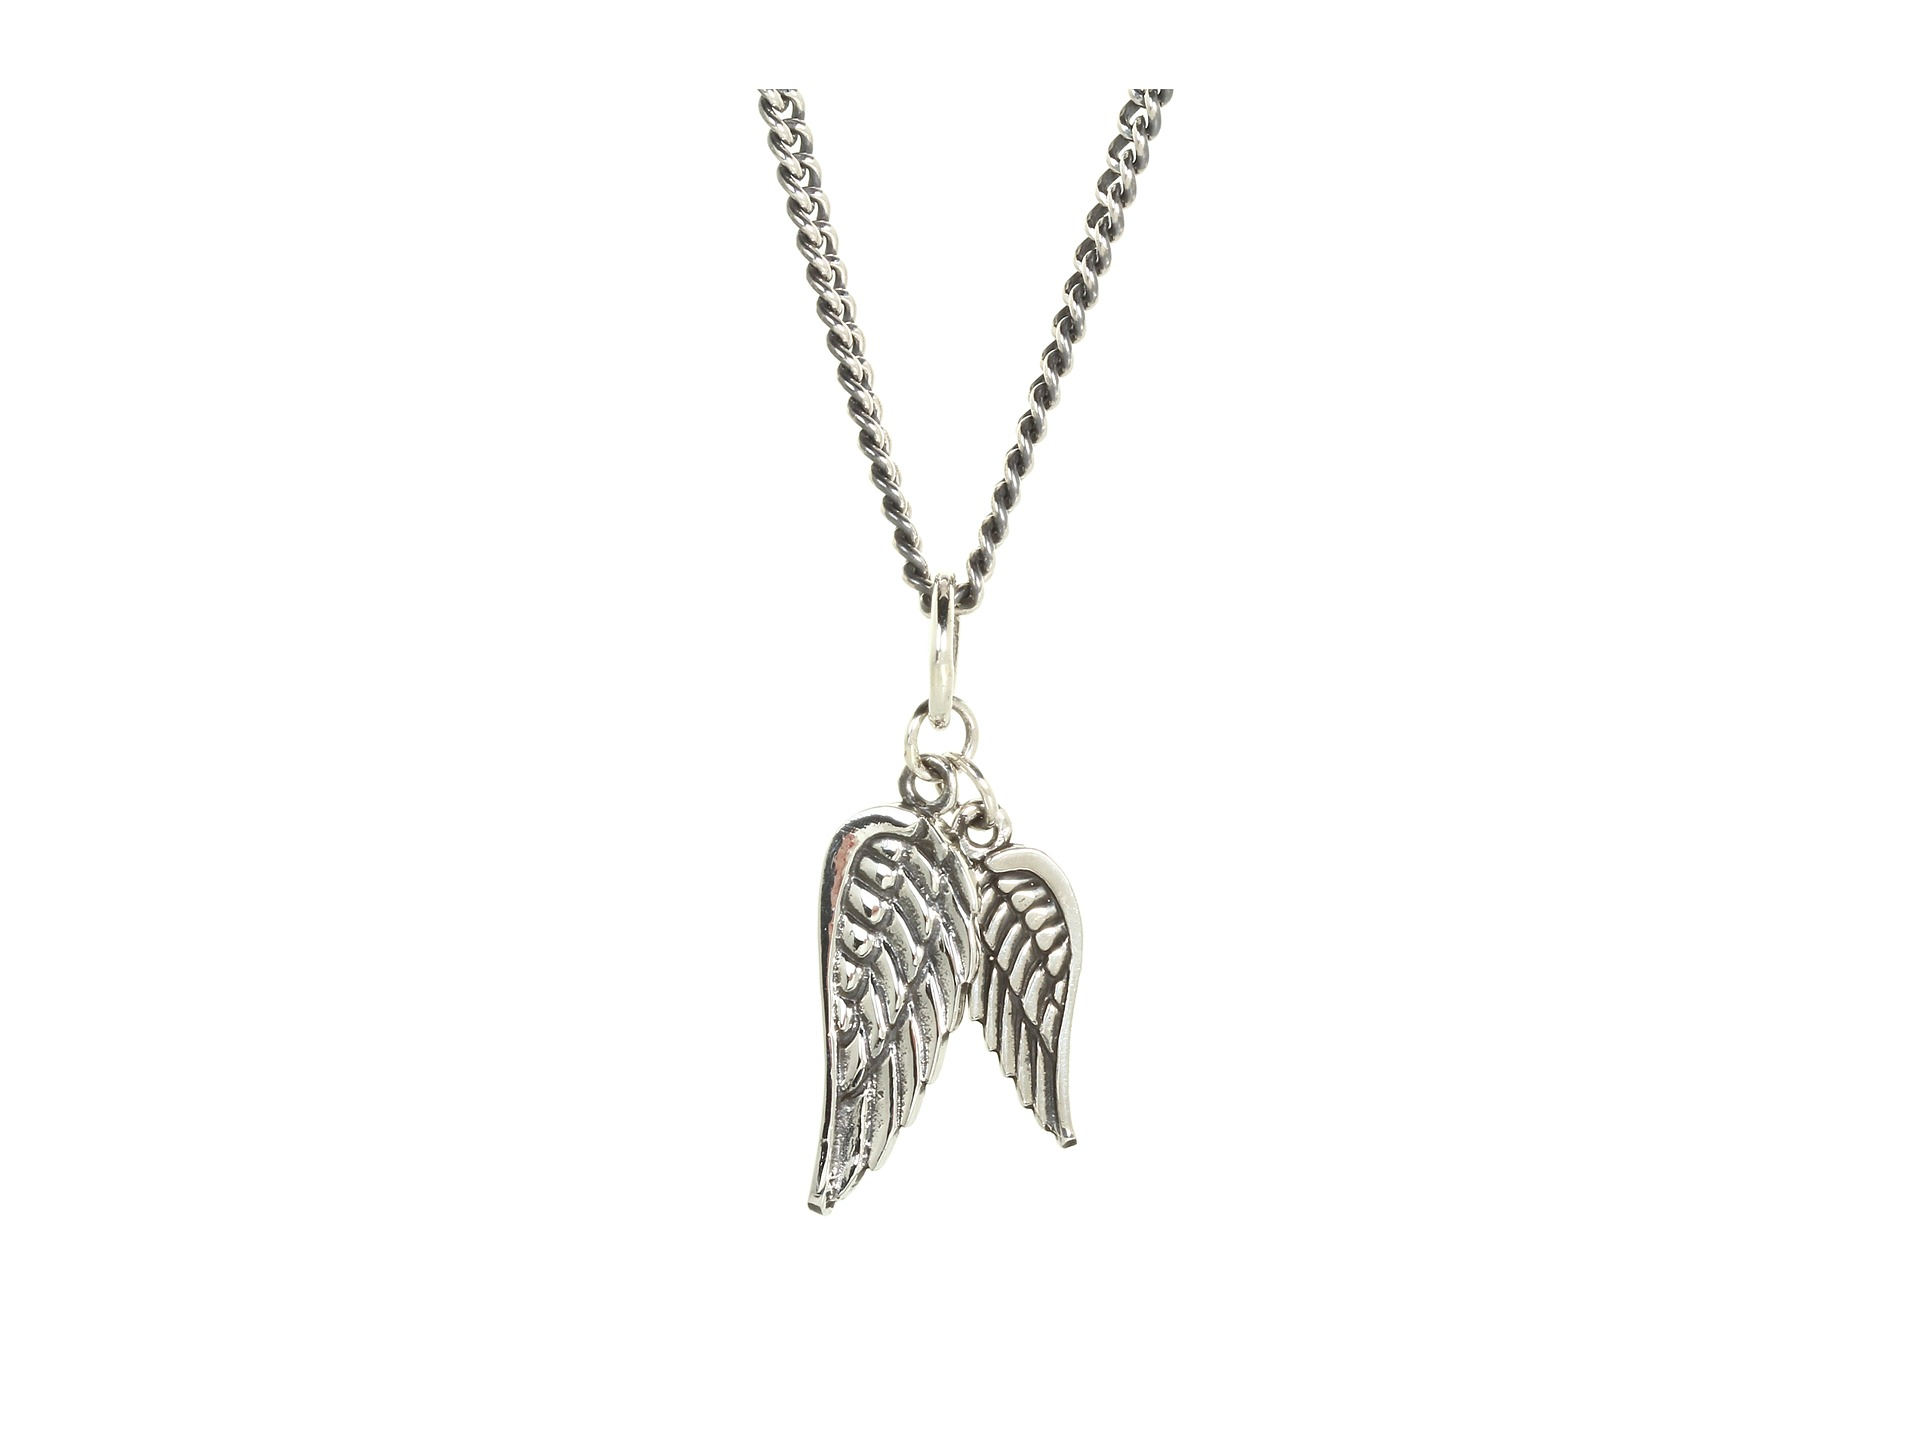 King baby studio silver double wing pendant necklace lyst for King baby jewelry sale